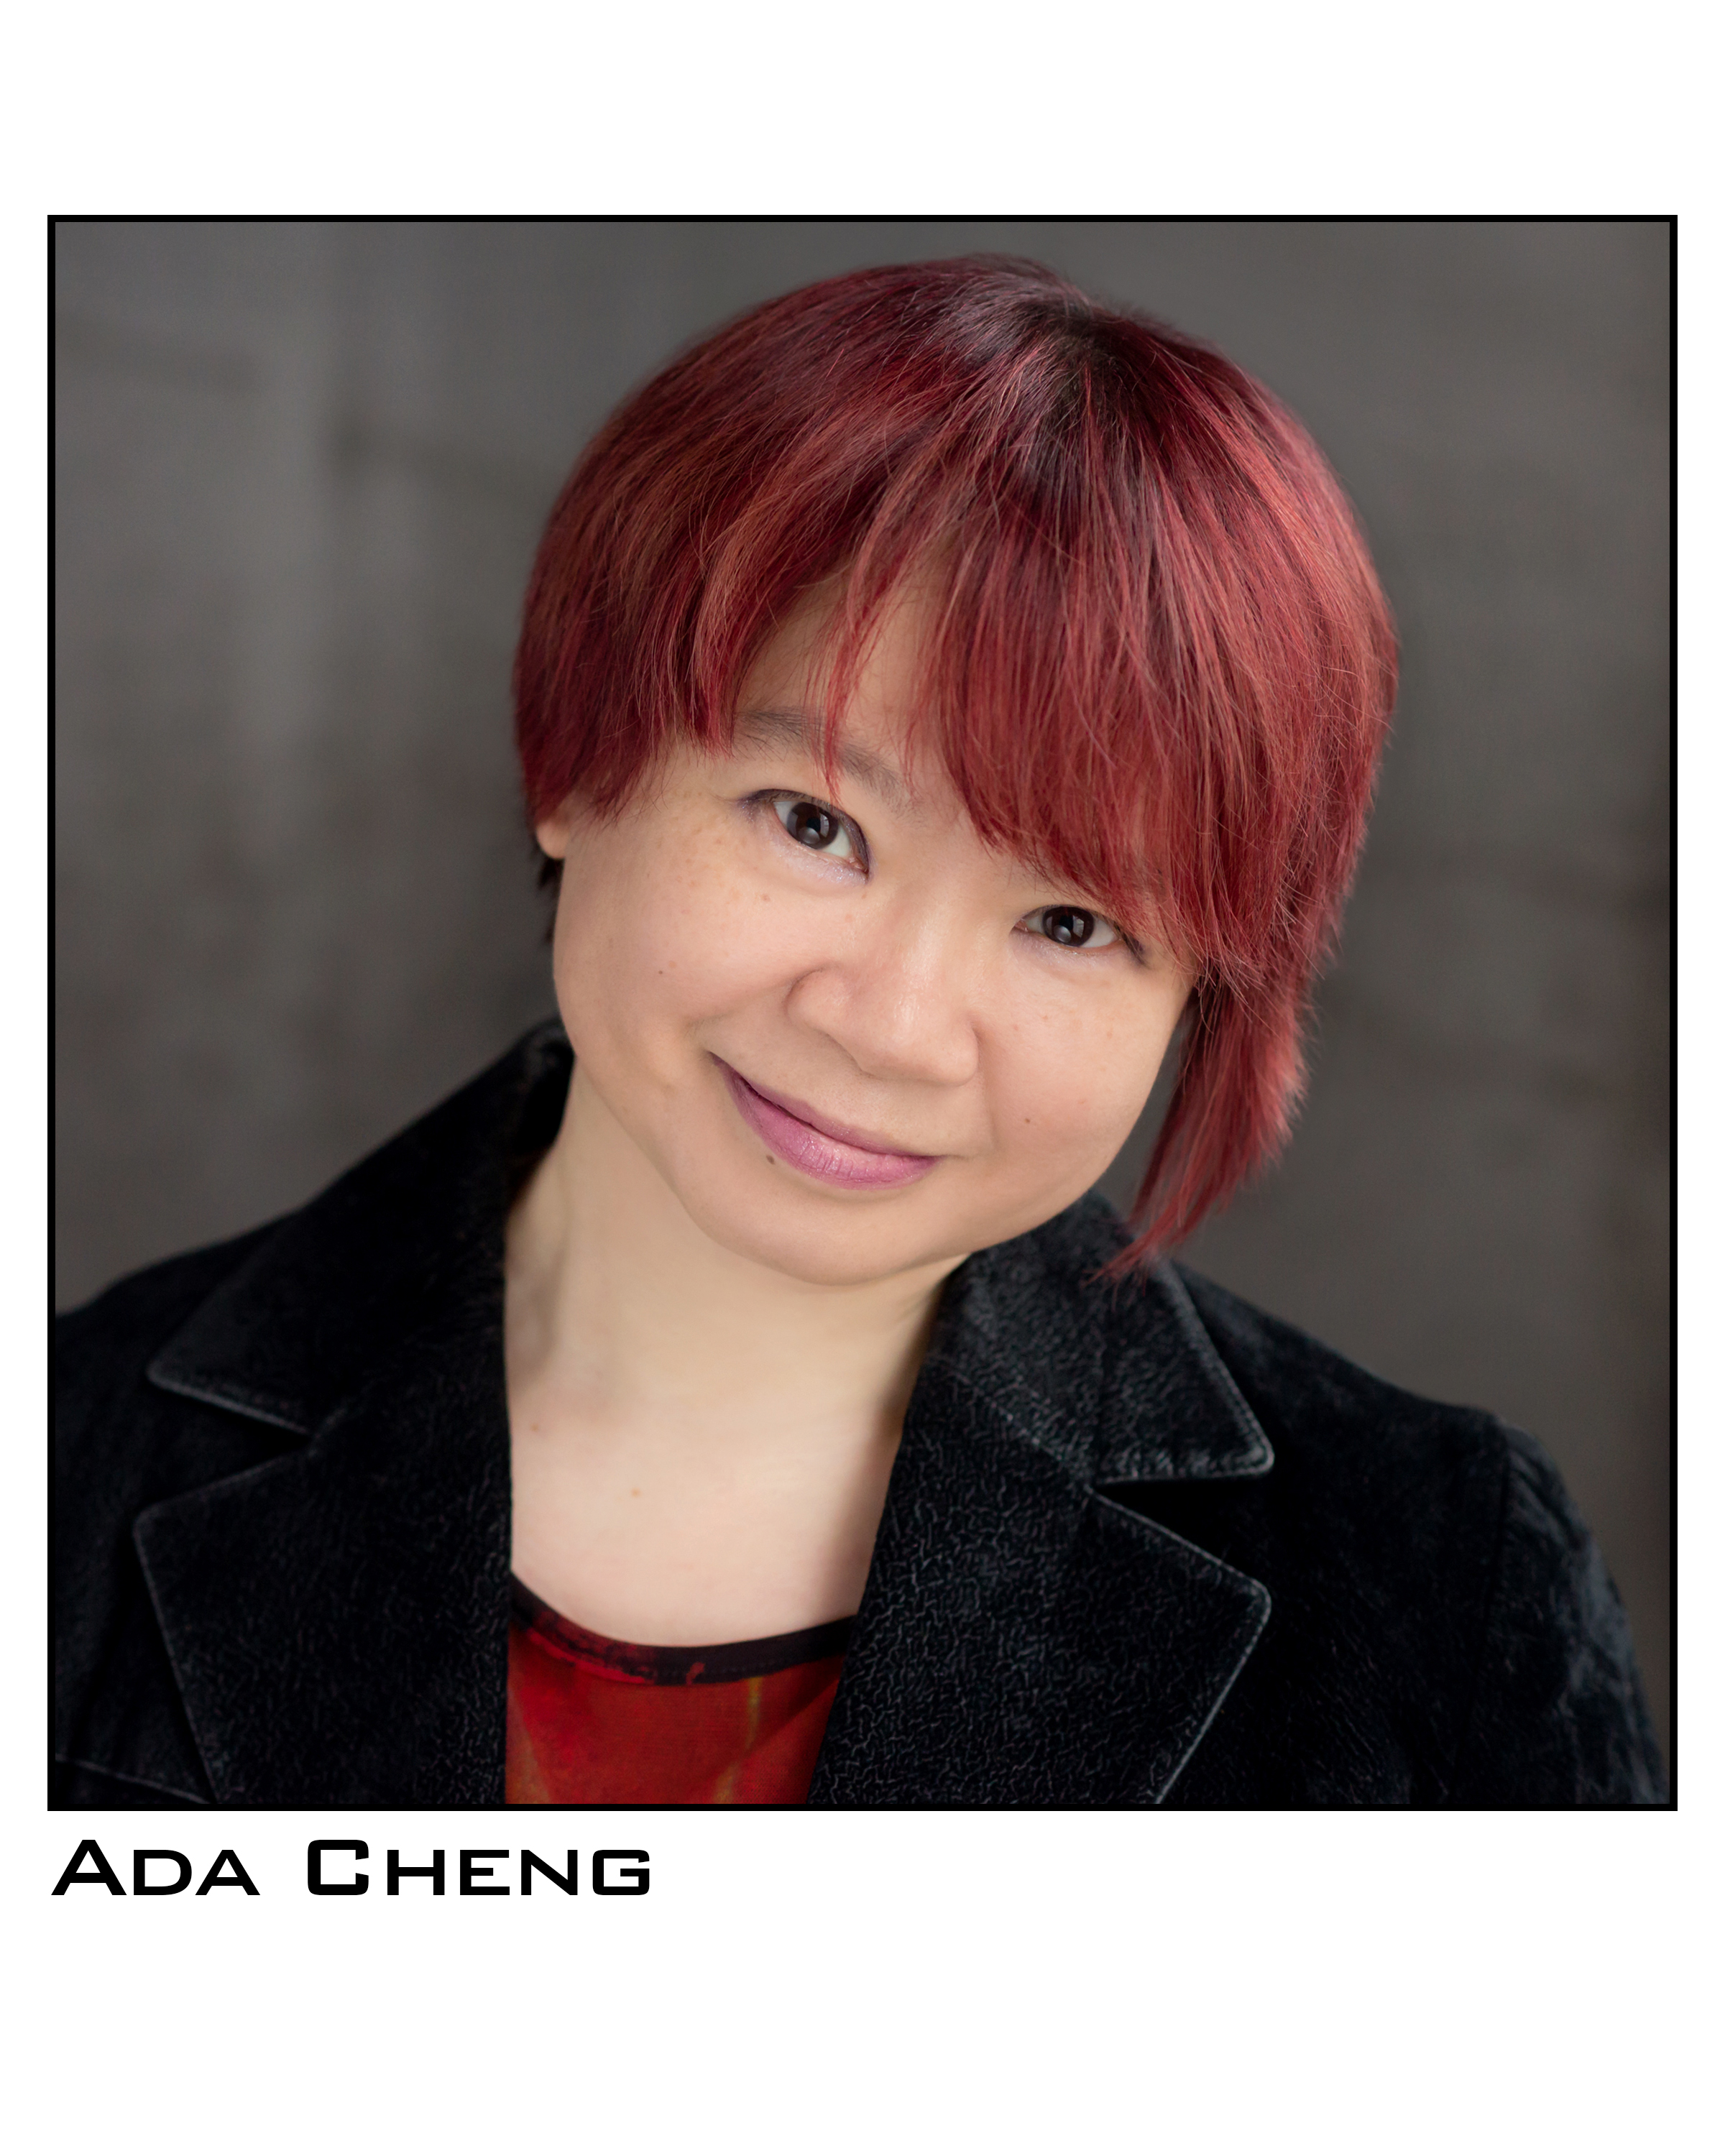 Ada Cheng - Ada Cheng is a professor-turned storyteller and performing artist. She is also the producer and host of the show Am I Man Enough?: A Storytelling/Podcasting Show, where people tell personal stories to critically examine the culture of toxic masculinity and the construction of masculinity and manhood. Her motto: Make your life the best story you tell.